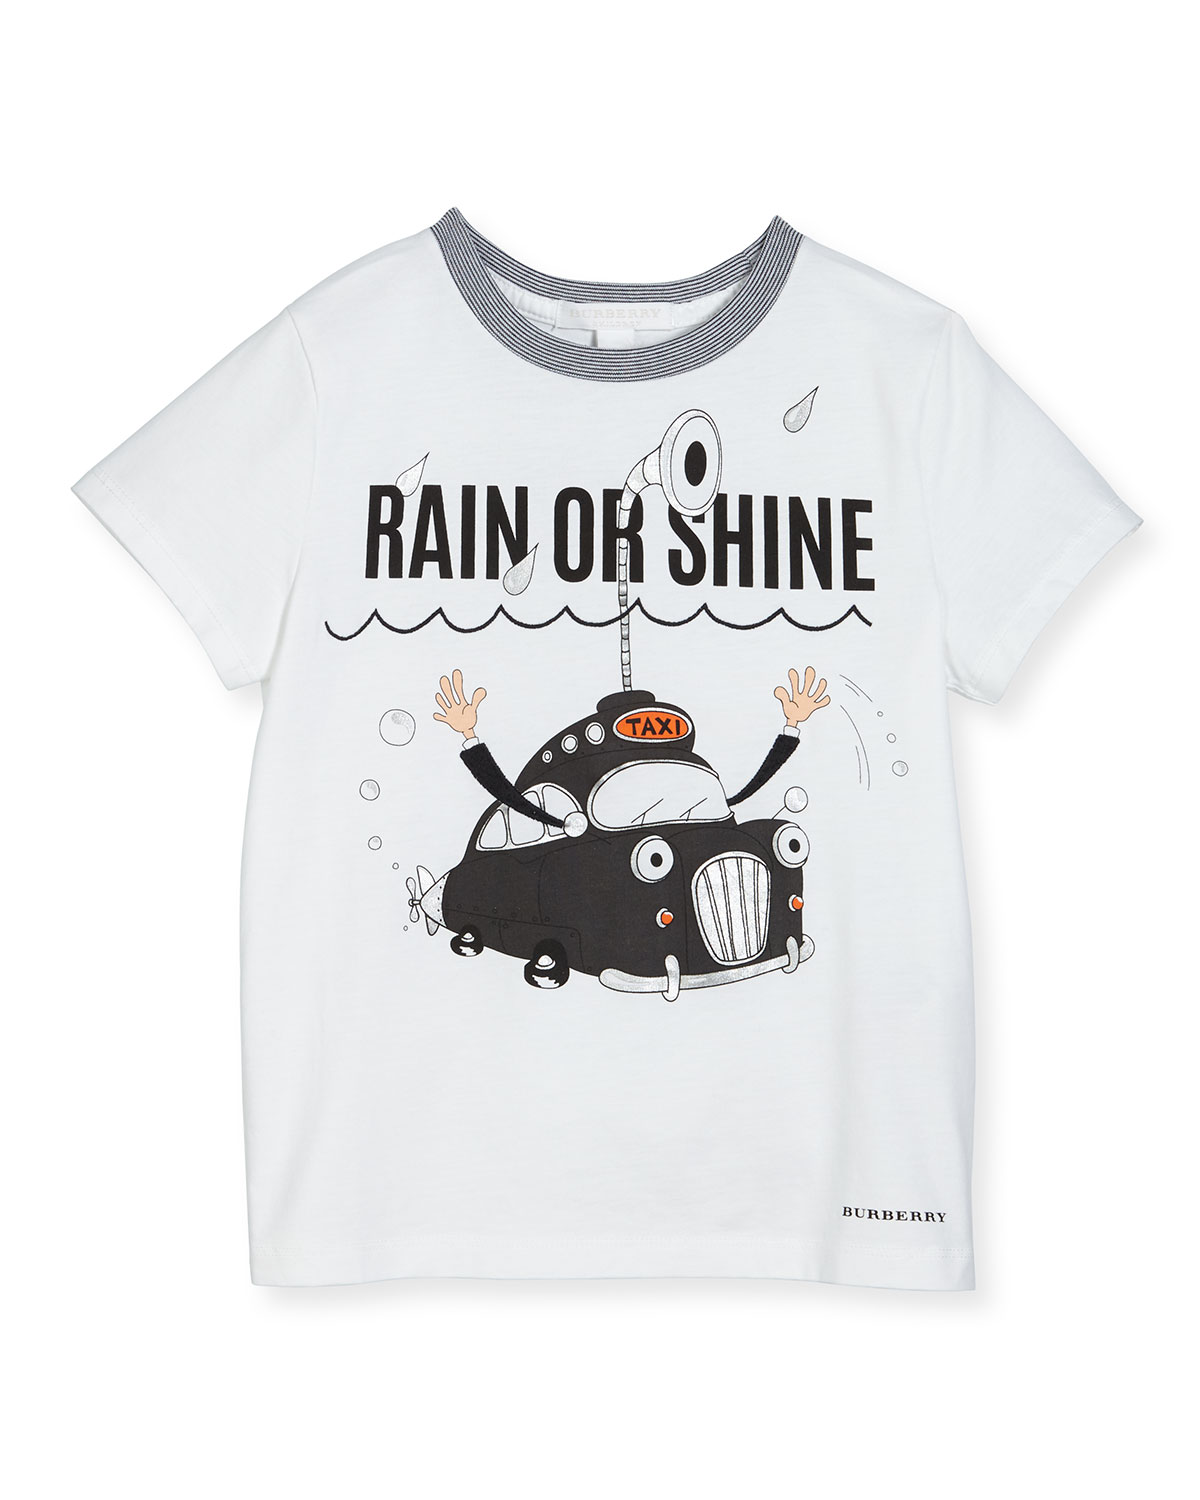 Rain or Shine Cotton T-Shirt, White, 4Y-14Y